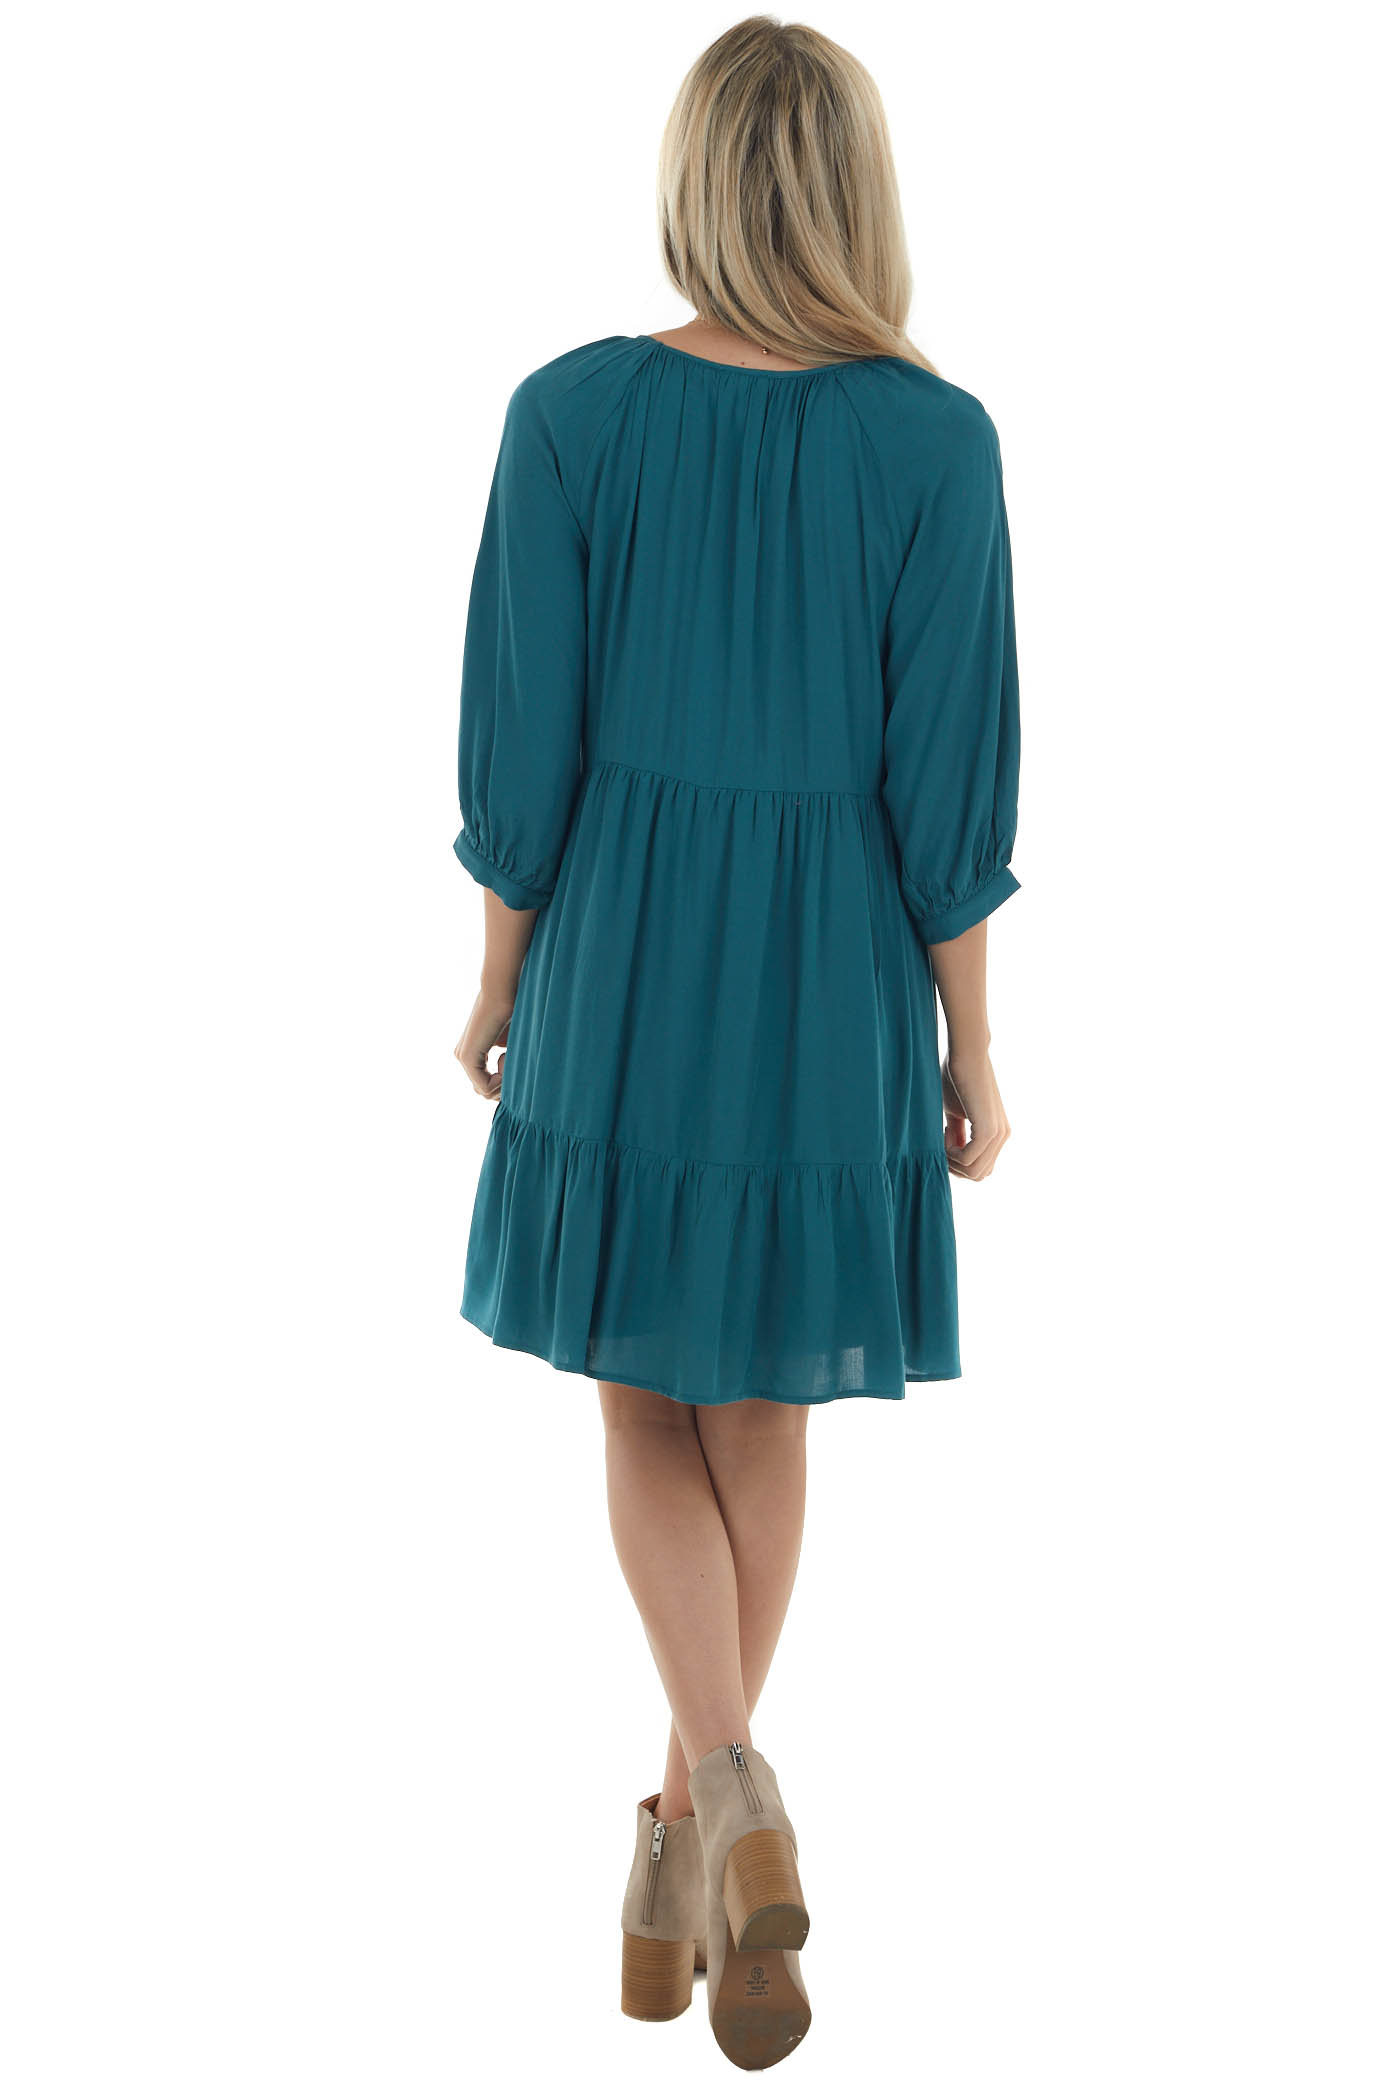 Pine and Champagne 3/4 Sleeve Babydoll Dress